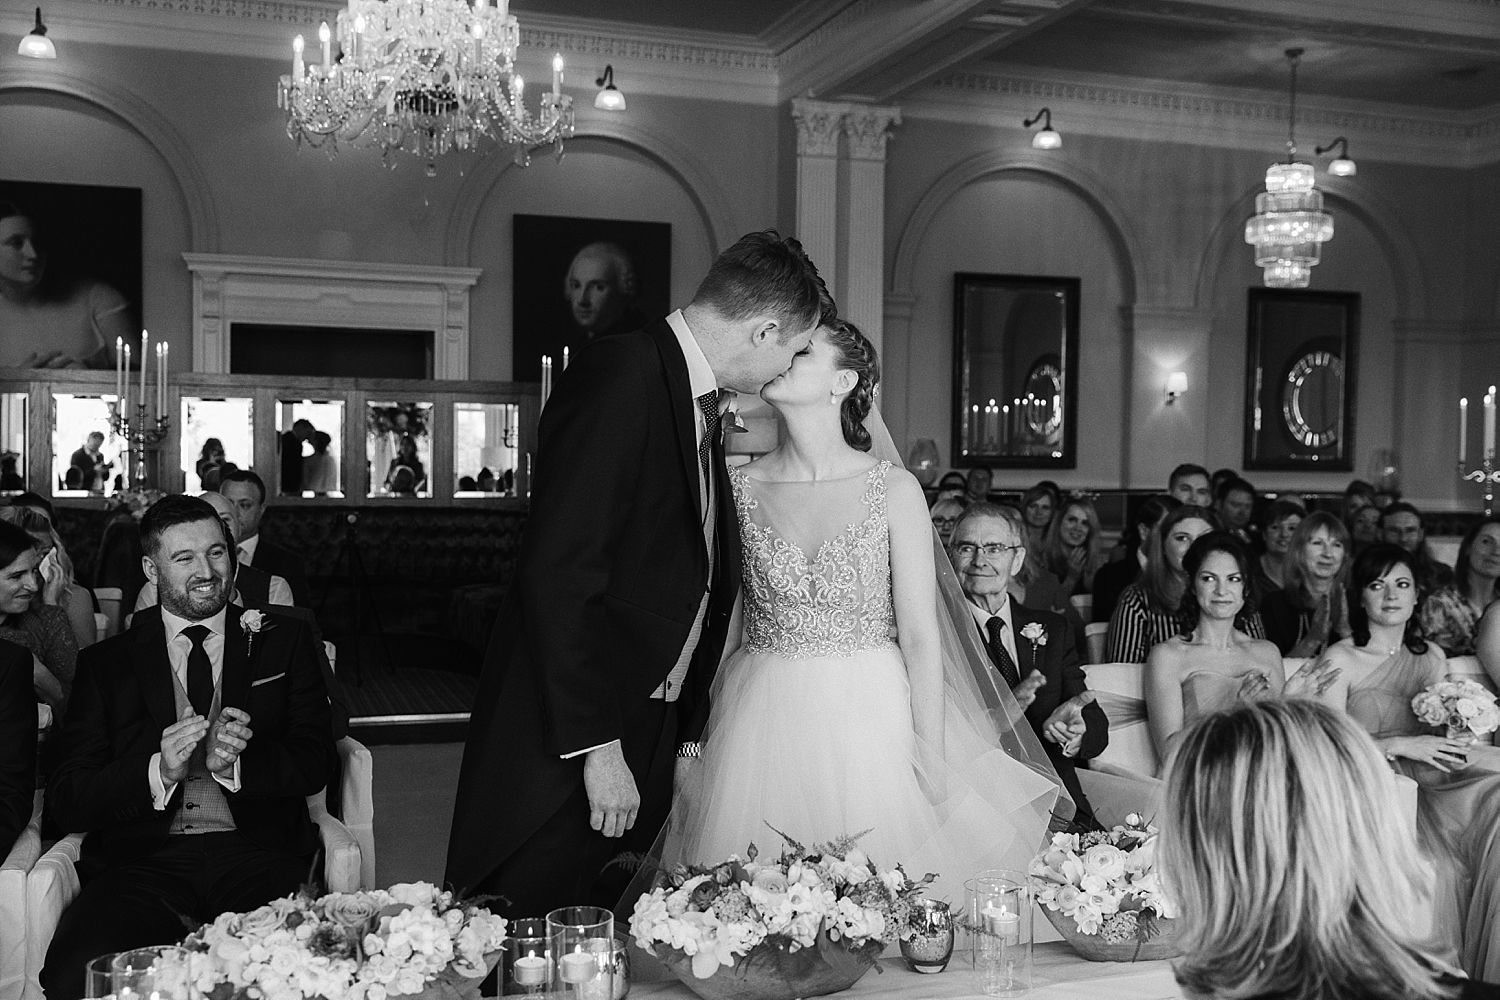 Bride and groom share first kiss at Laura Ashley Belsfield Hotel wedding